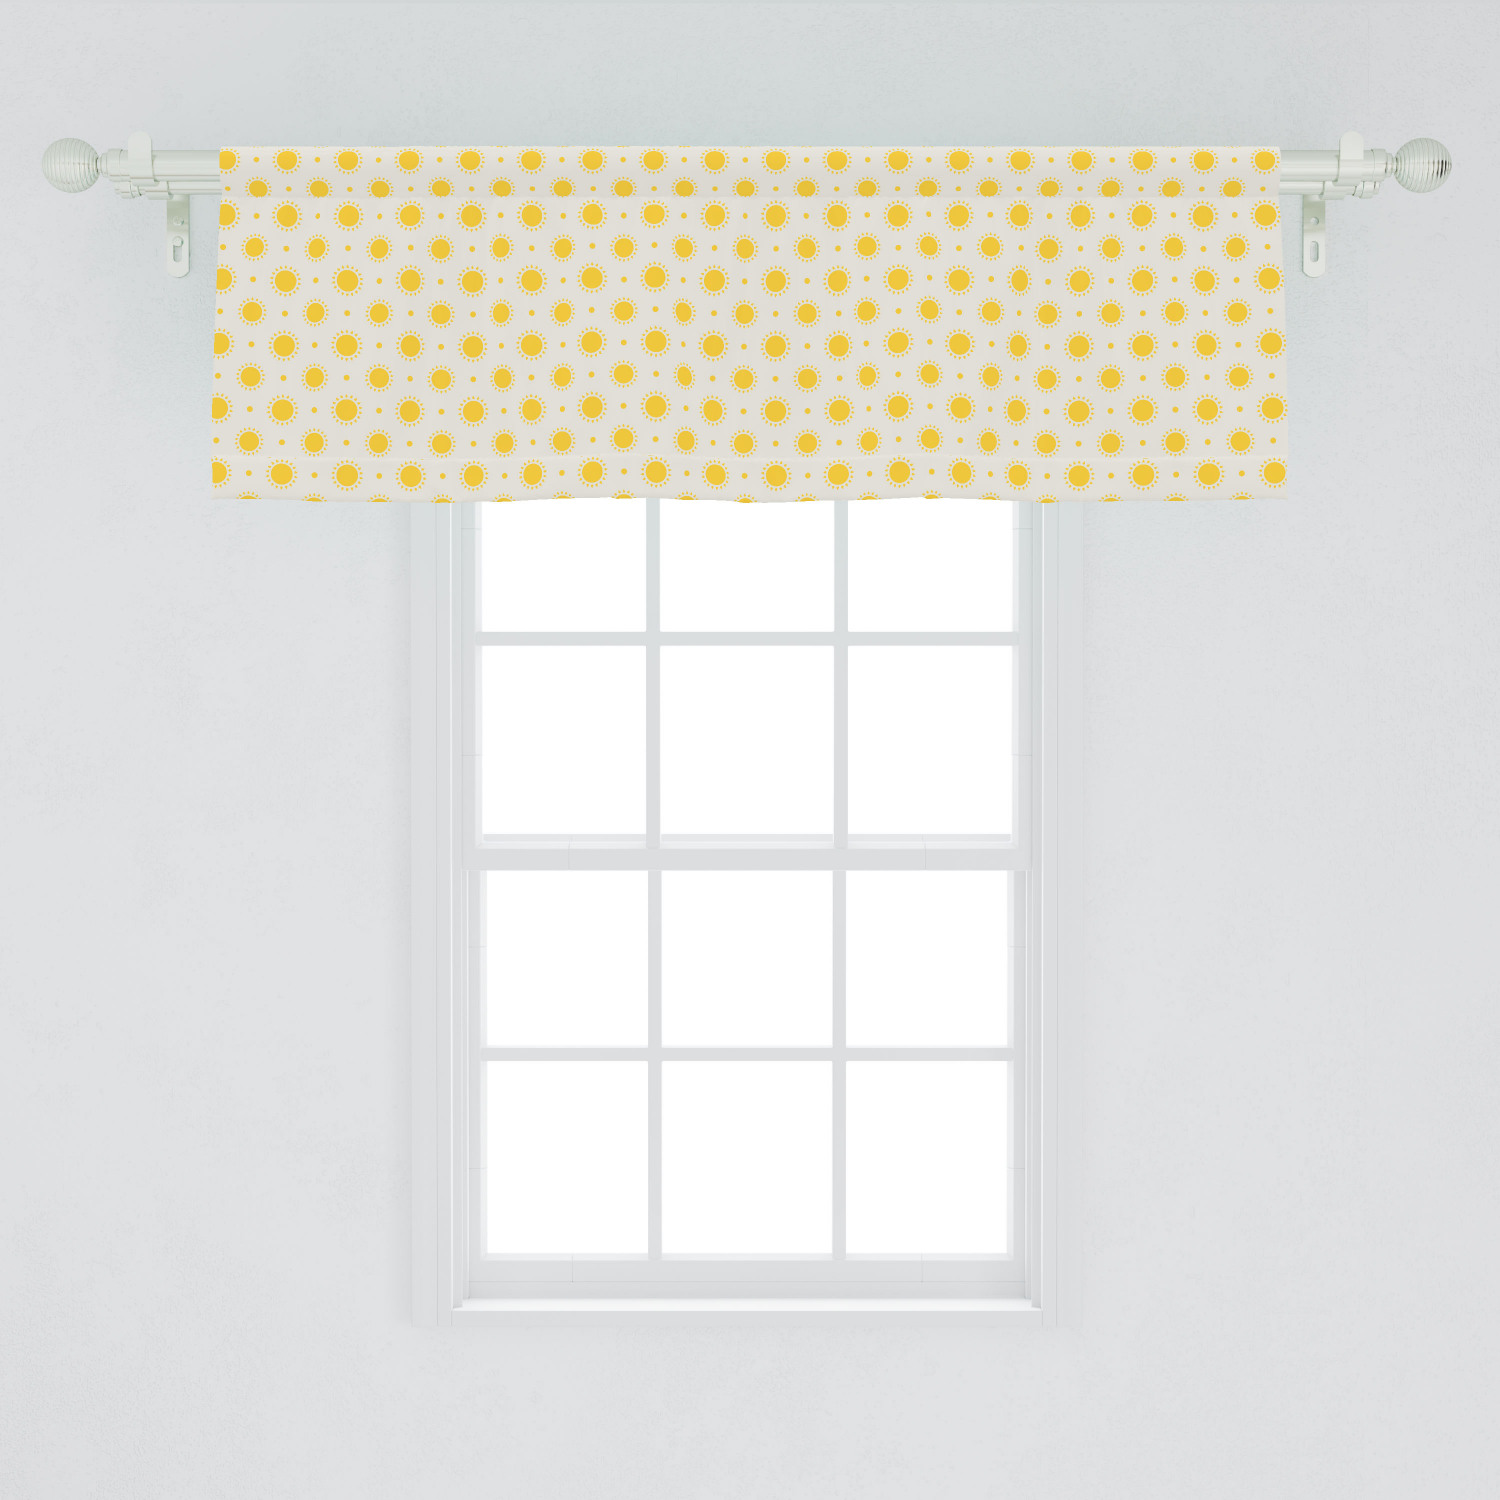 Red White Polka Dot Mickey Minnie Mouse Kitchen Fabric Curtain Topper Valance Handmade Products Spearhead Home Decor